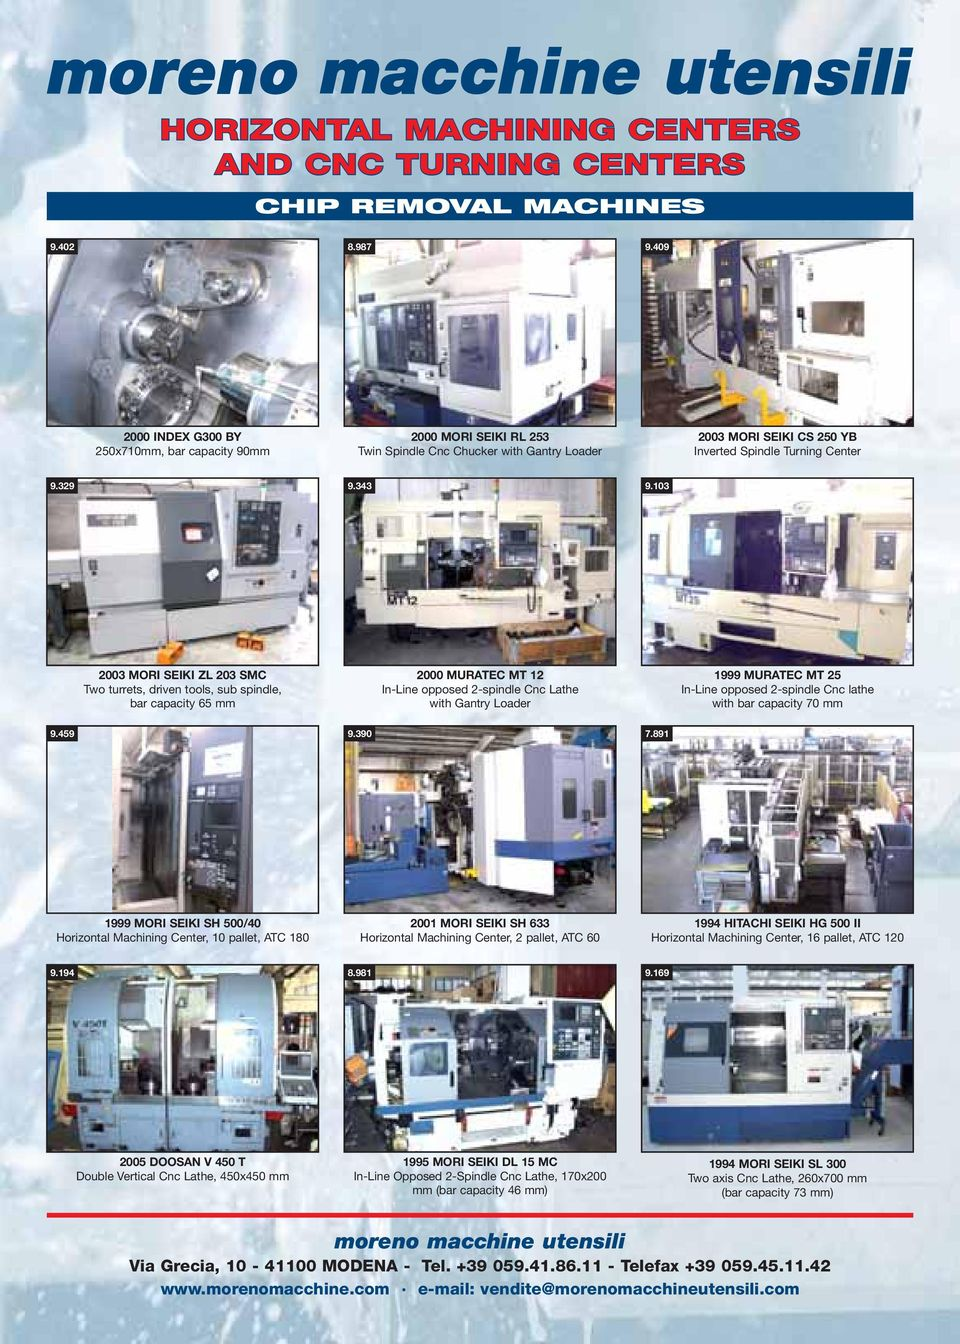 103 2003 MORI SEIKI ZL 203 SMC Two turrets, driven tools, sub spindle, bar capacity 65 mm 2000 MURATEC MT 12 In-Line opposed 2-spindle Cnc Lathe with Gantry Loader 1999 MURATEC MT 25 In-Line opposed